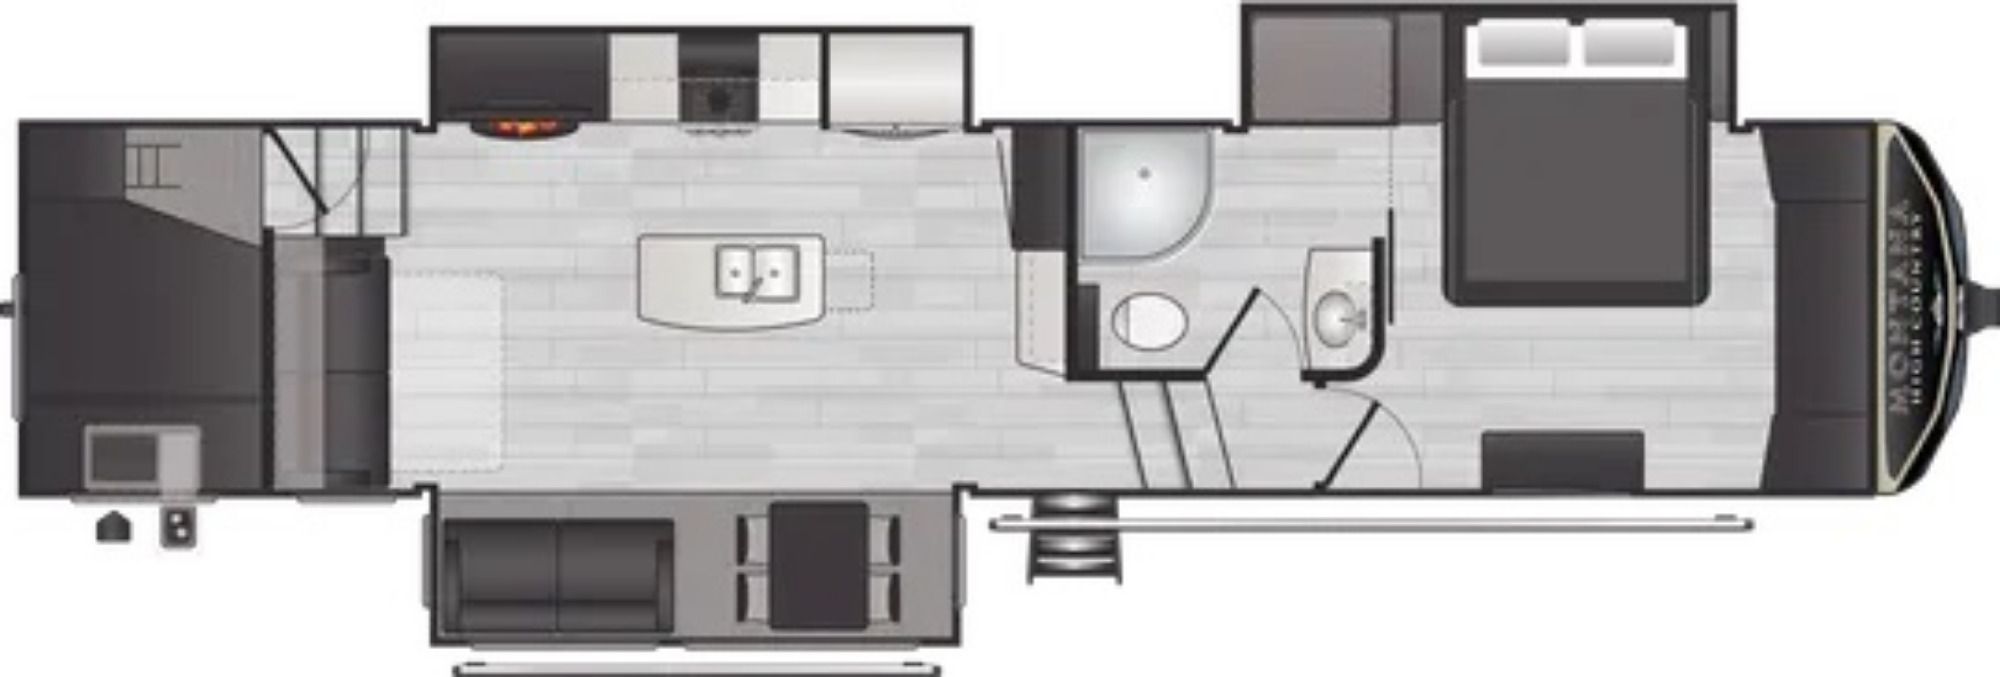 View Floor Plan for 2021 KEYSTONE MONTANA HIGH COUNTRY 350BH